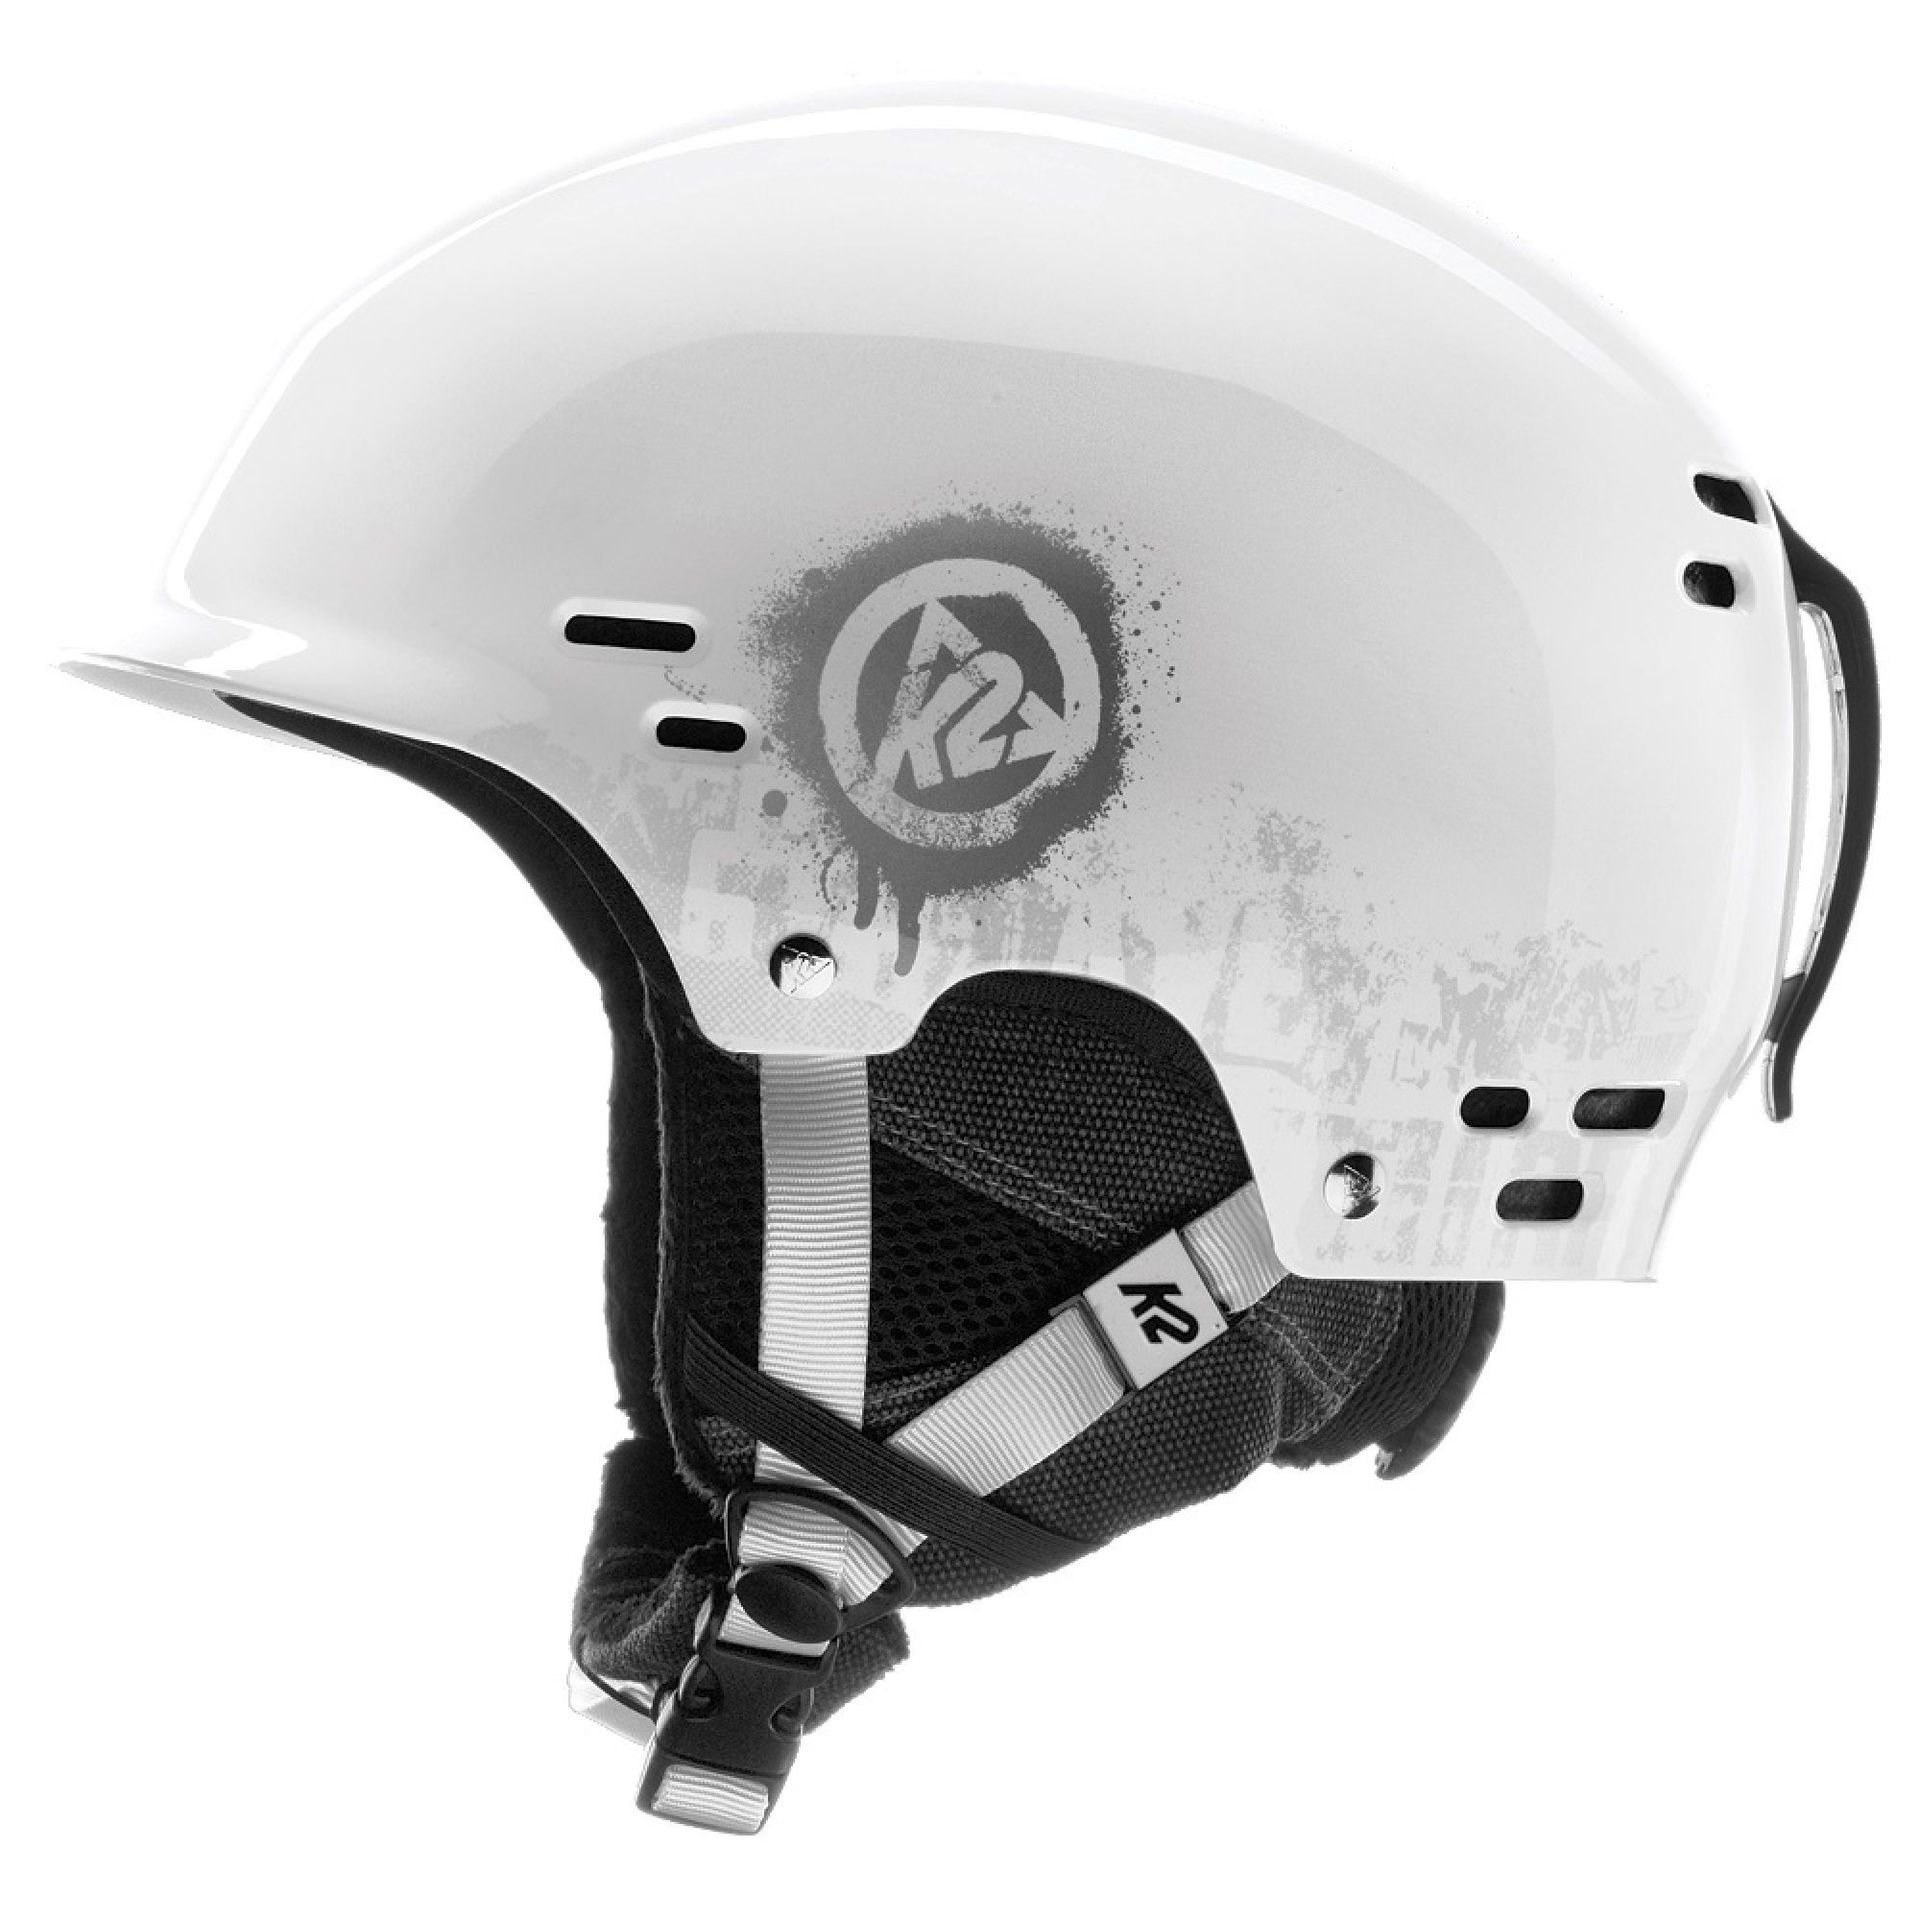 KASK K2 THRIVE WHITE